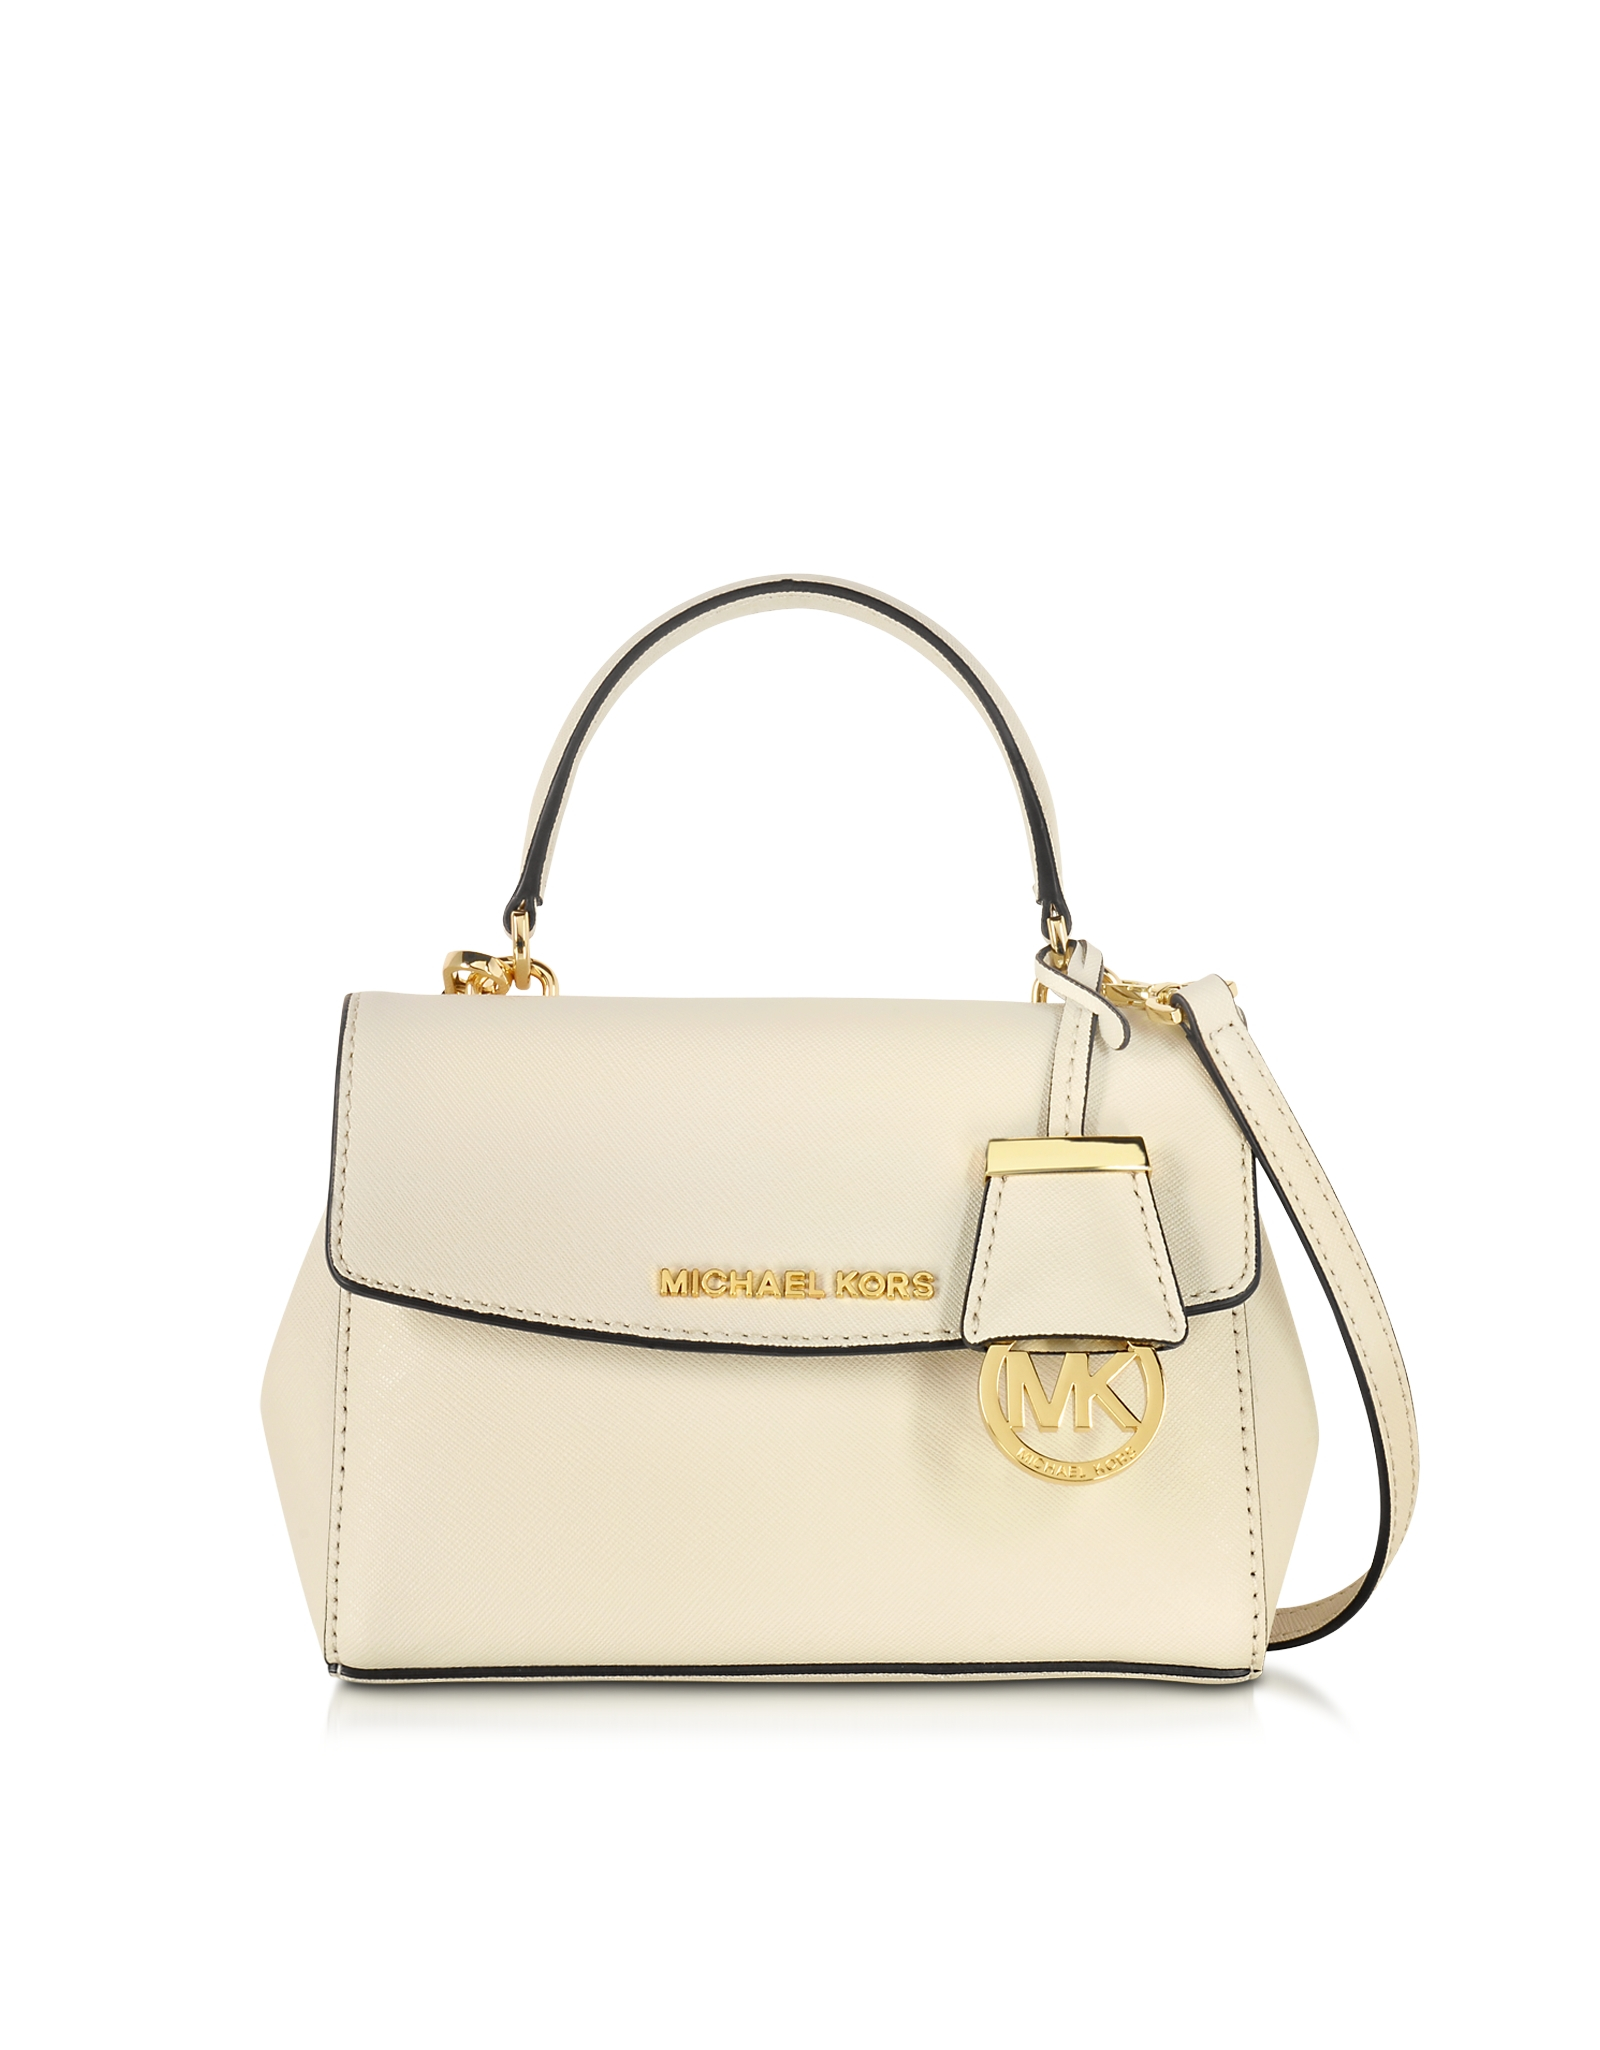 4403fdc7f7f0 Michael Kors Ava Ecru Saffiano Leather Extra Small Crossbody Bag in ...